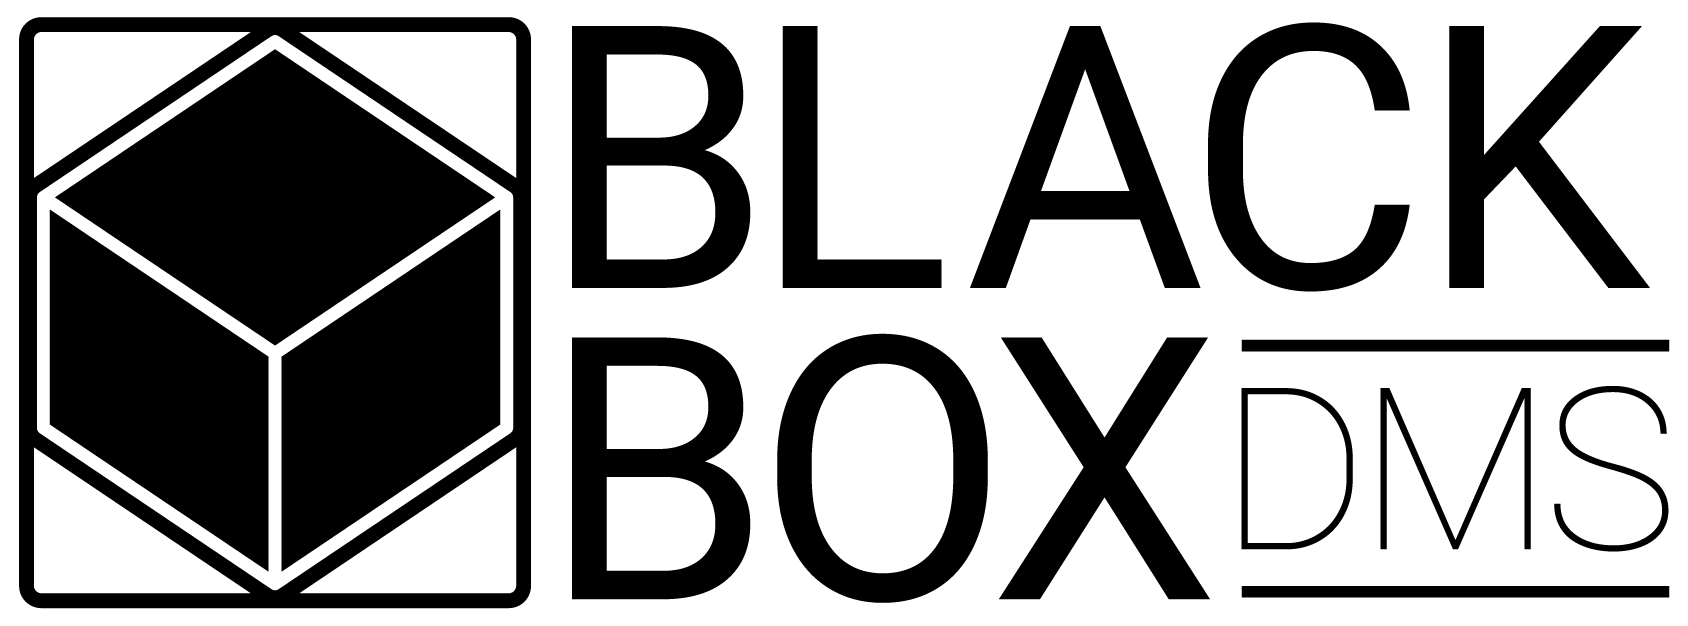 Black Box Digital Marketing Solutions Logo